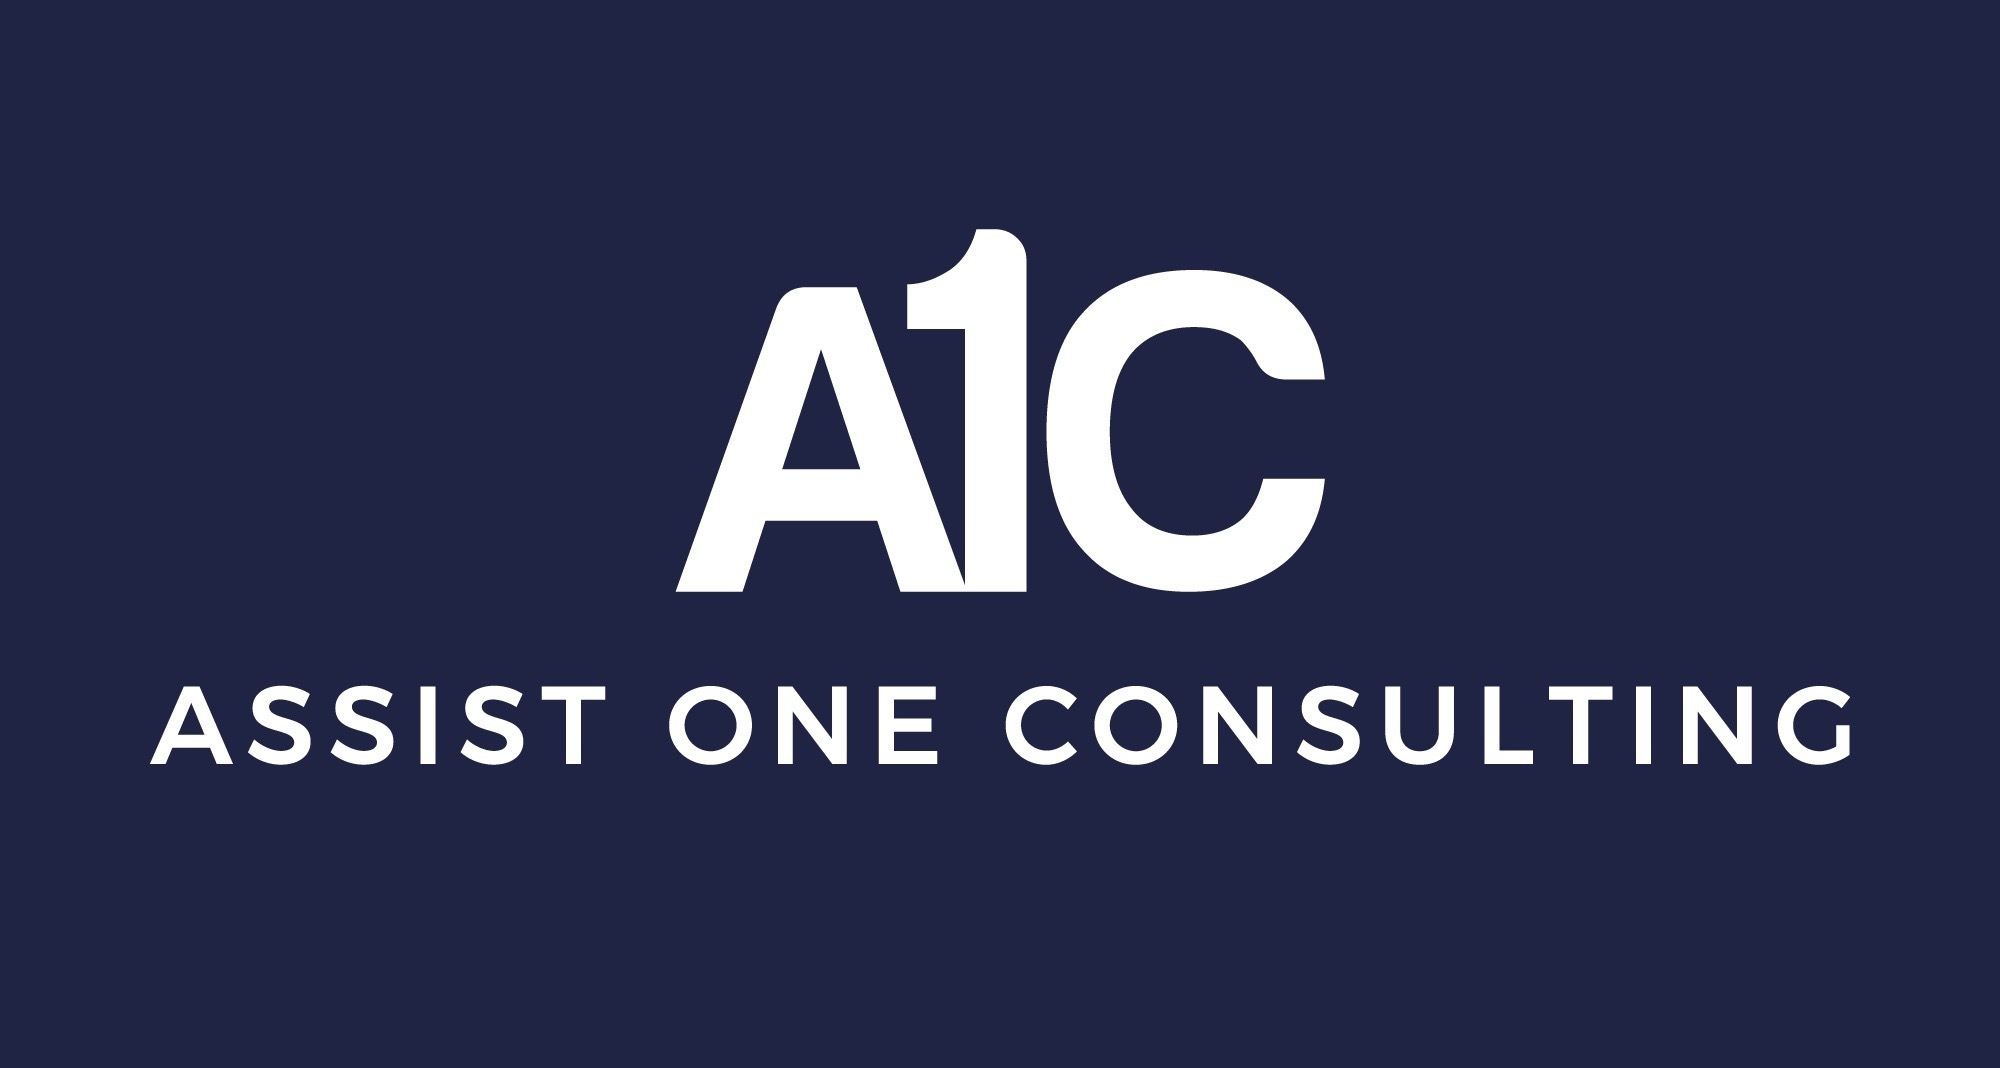 Assist One Consulting LLC